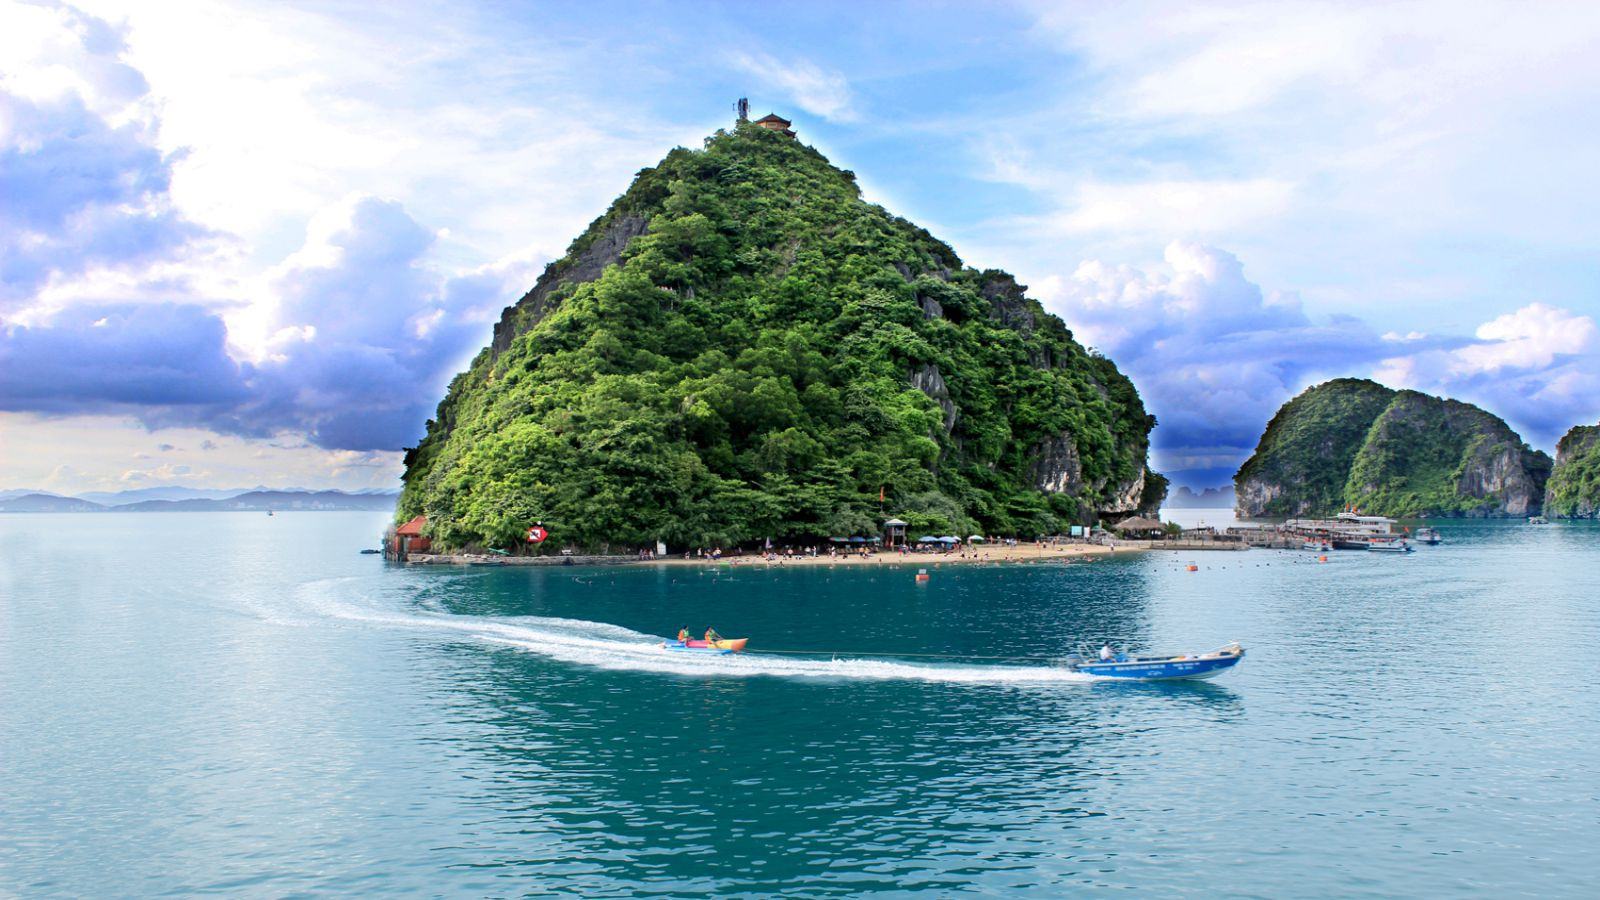 Group Tour: Hạ Long Bay 2 Days 1 Night On Boat